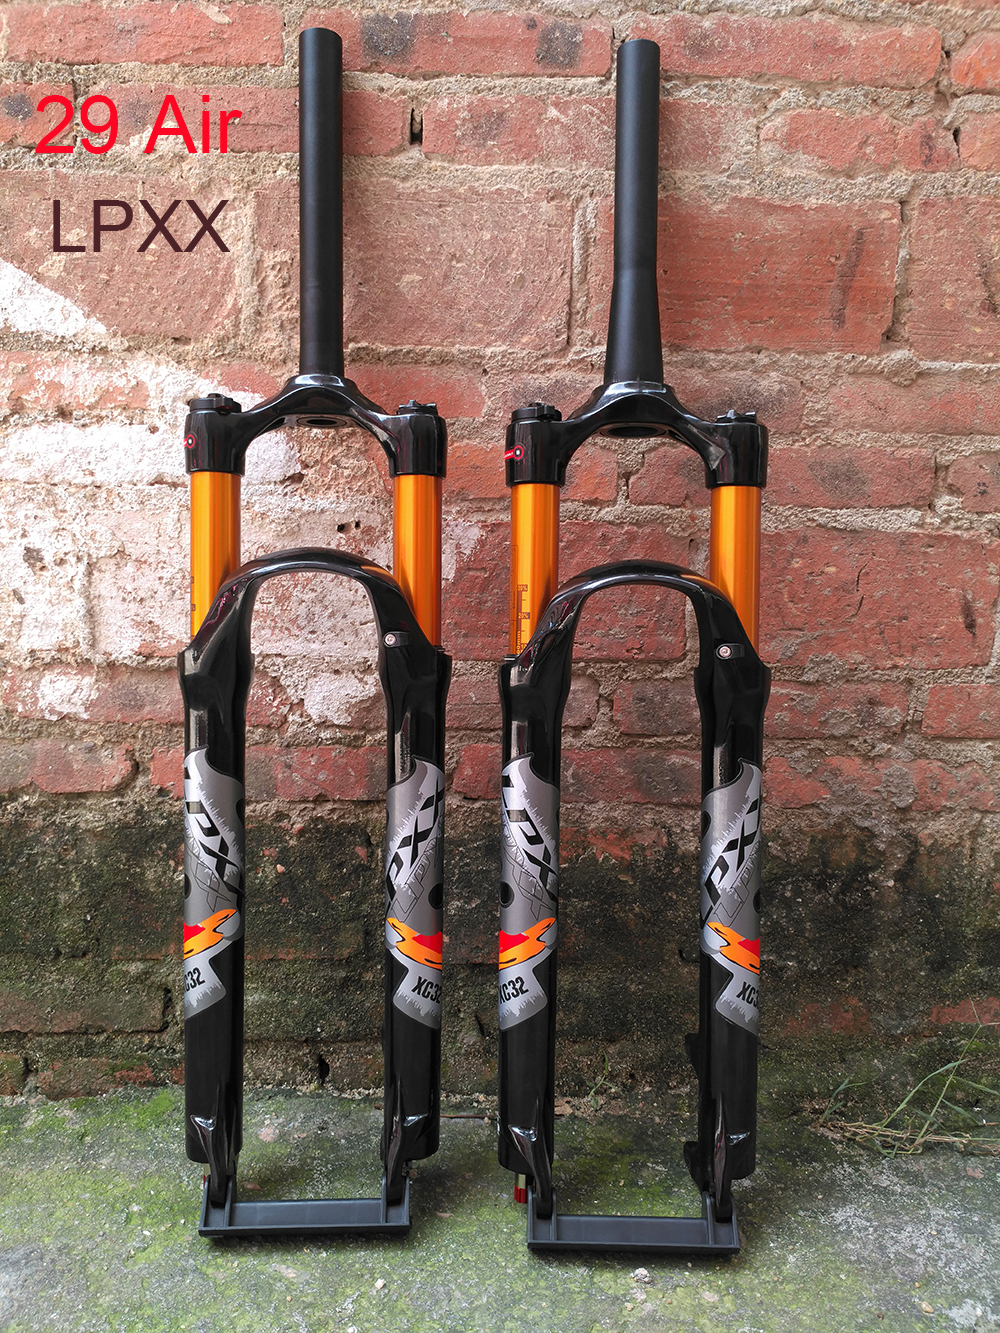 original 29er 32mm XC32 LUTU rebound adjustable alloy air suspension mtb bicycle front fork